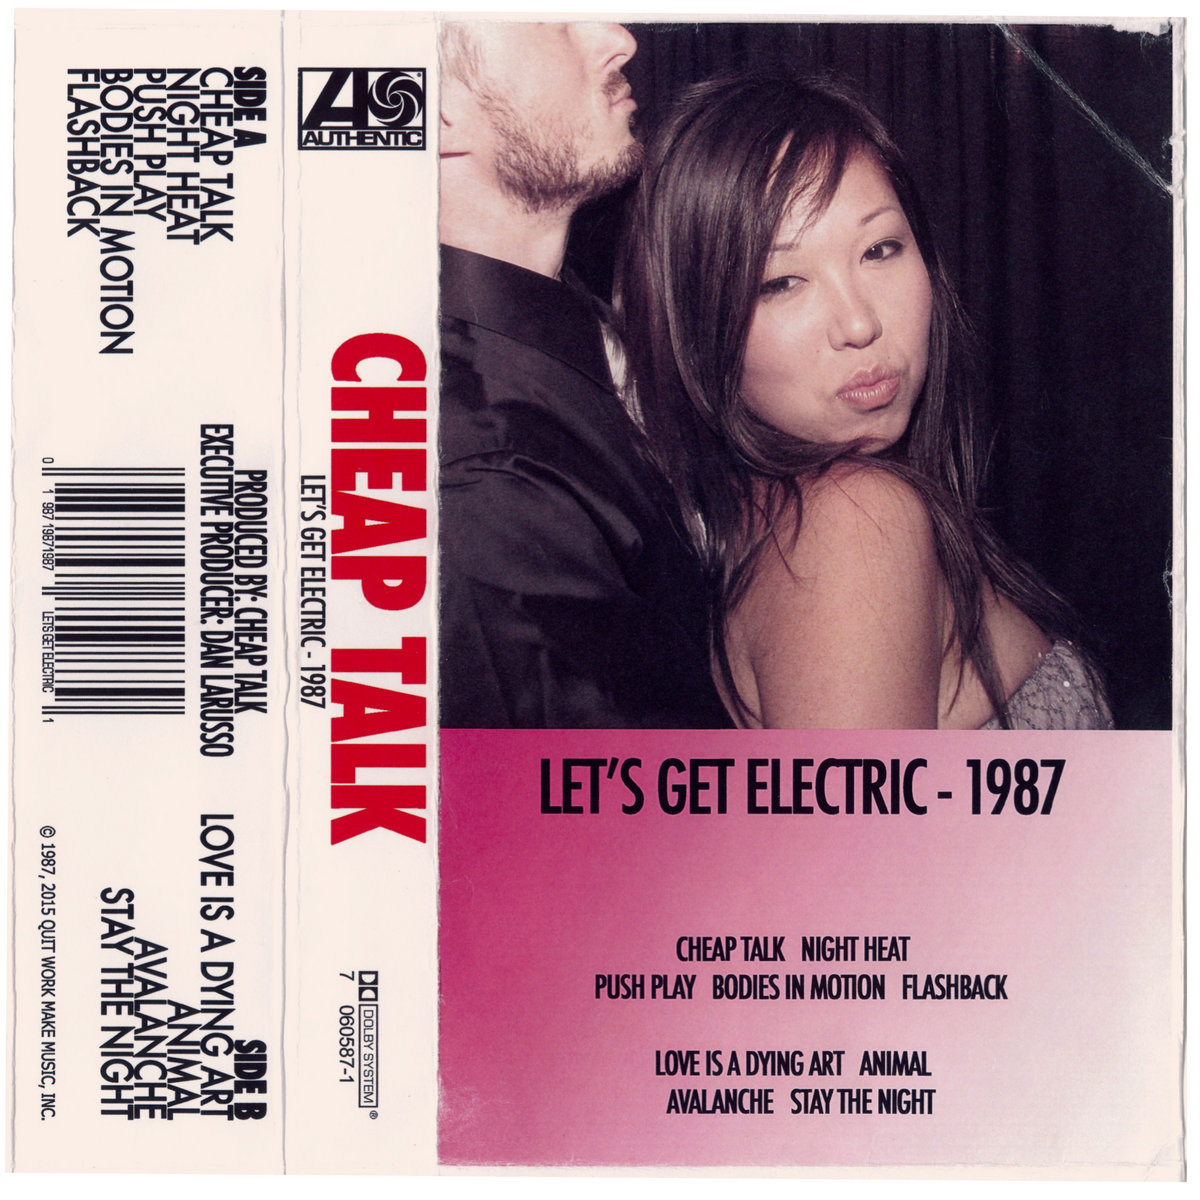 from letu0027s get electric by cheap talk